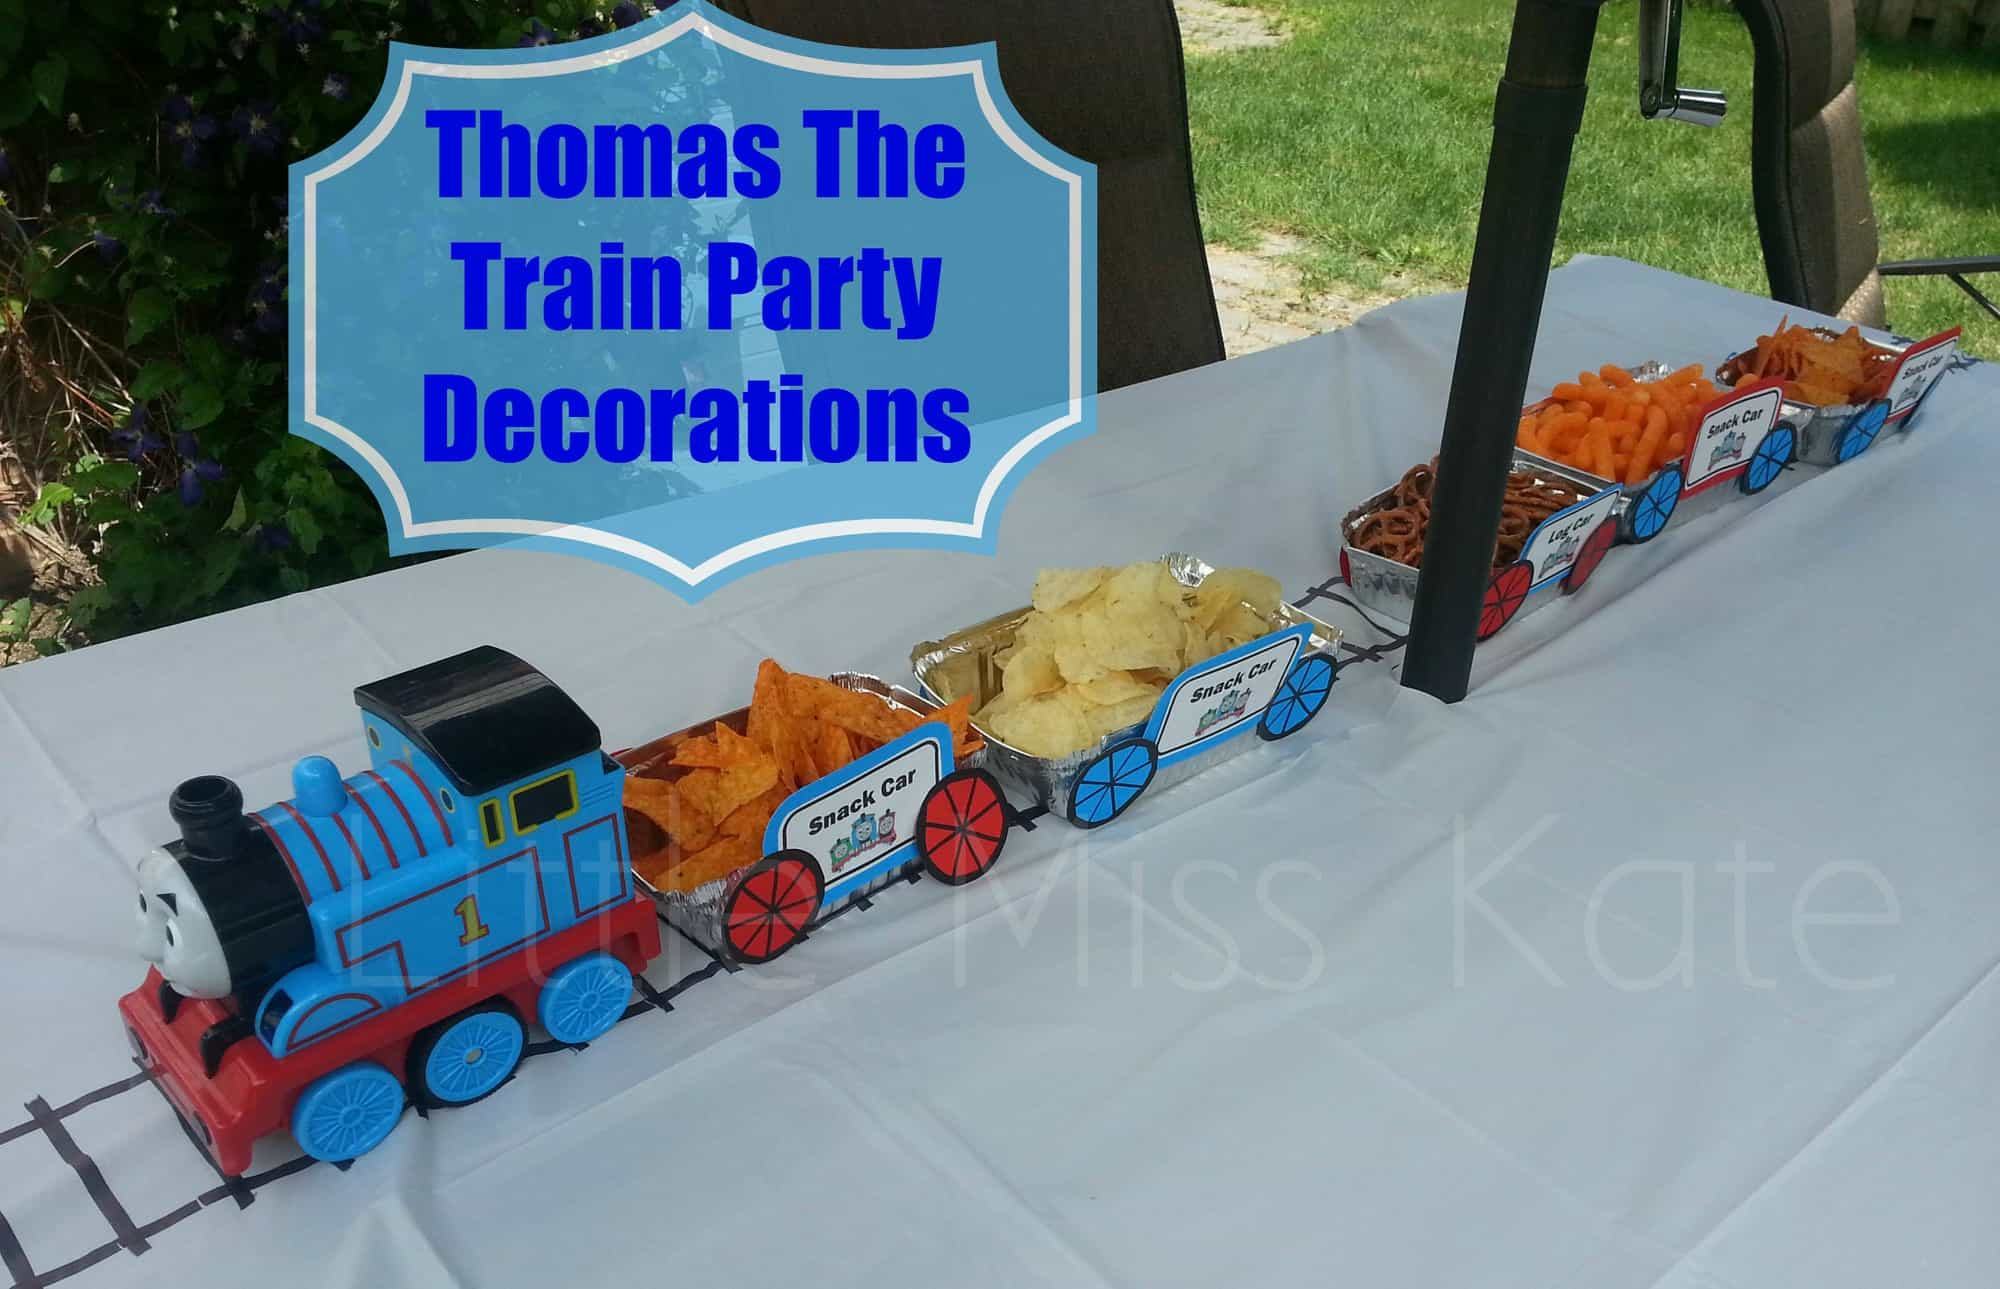 Best ideas about Thomas The Train Birthday Decorations . Save or Pin Thomas The Train Party Decorations Little Miss Kate Now.